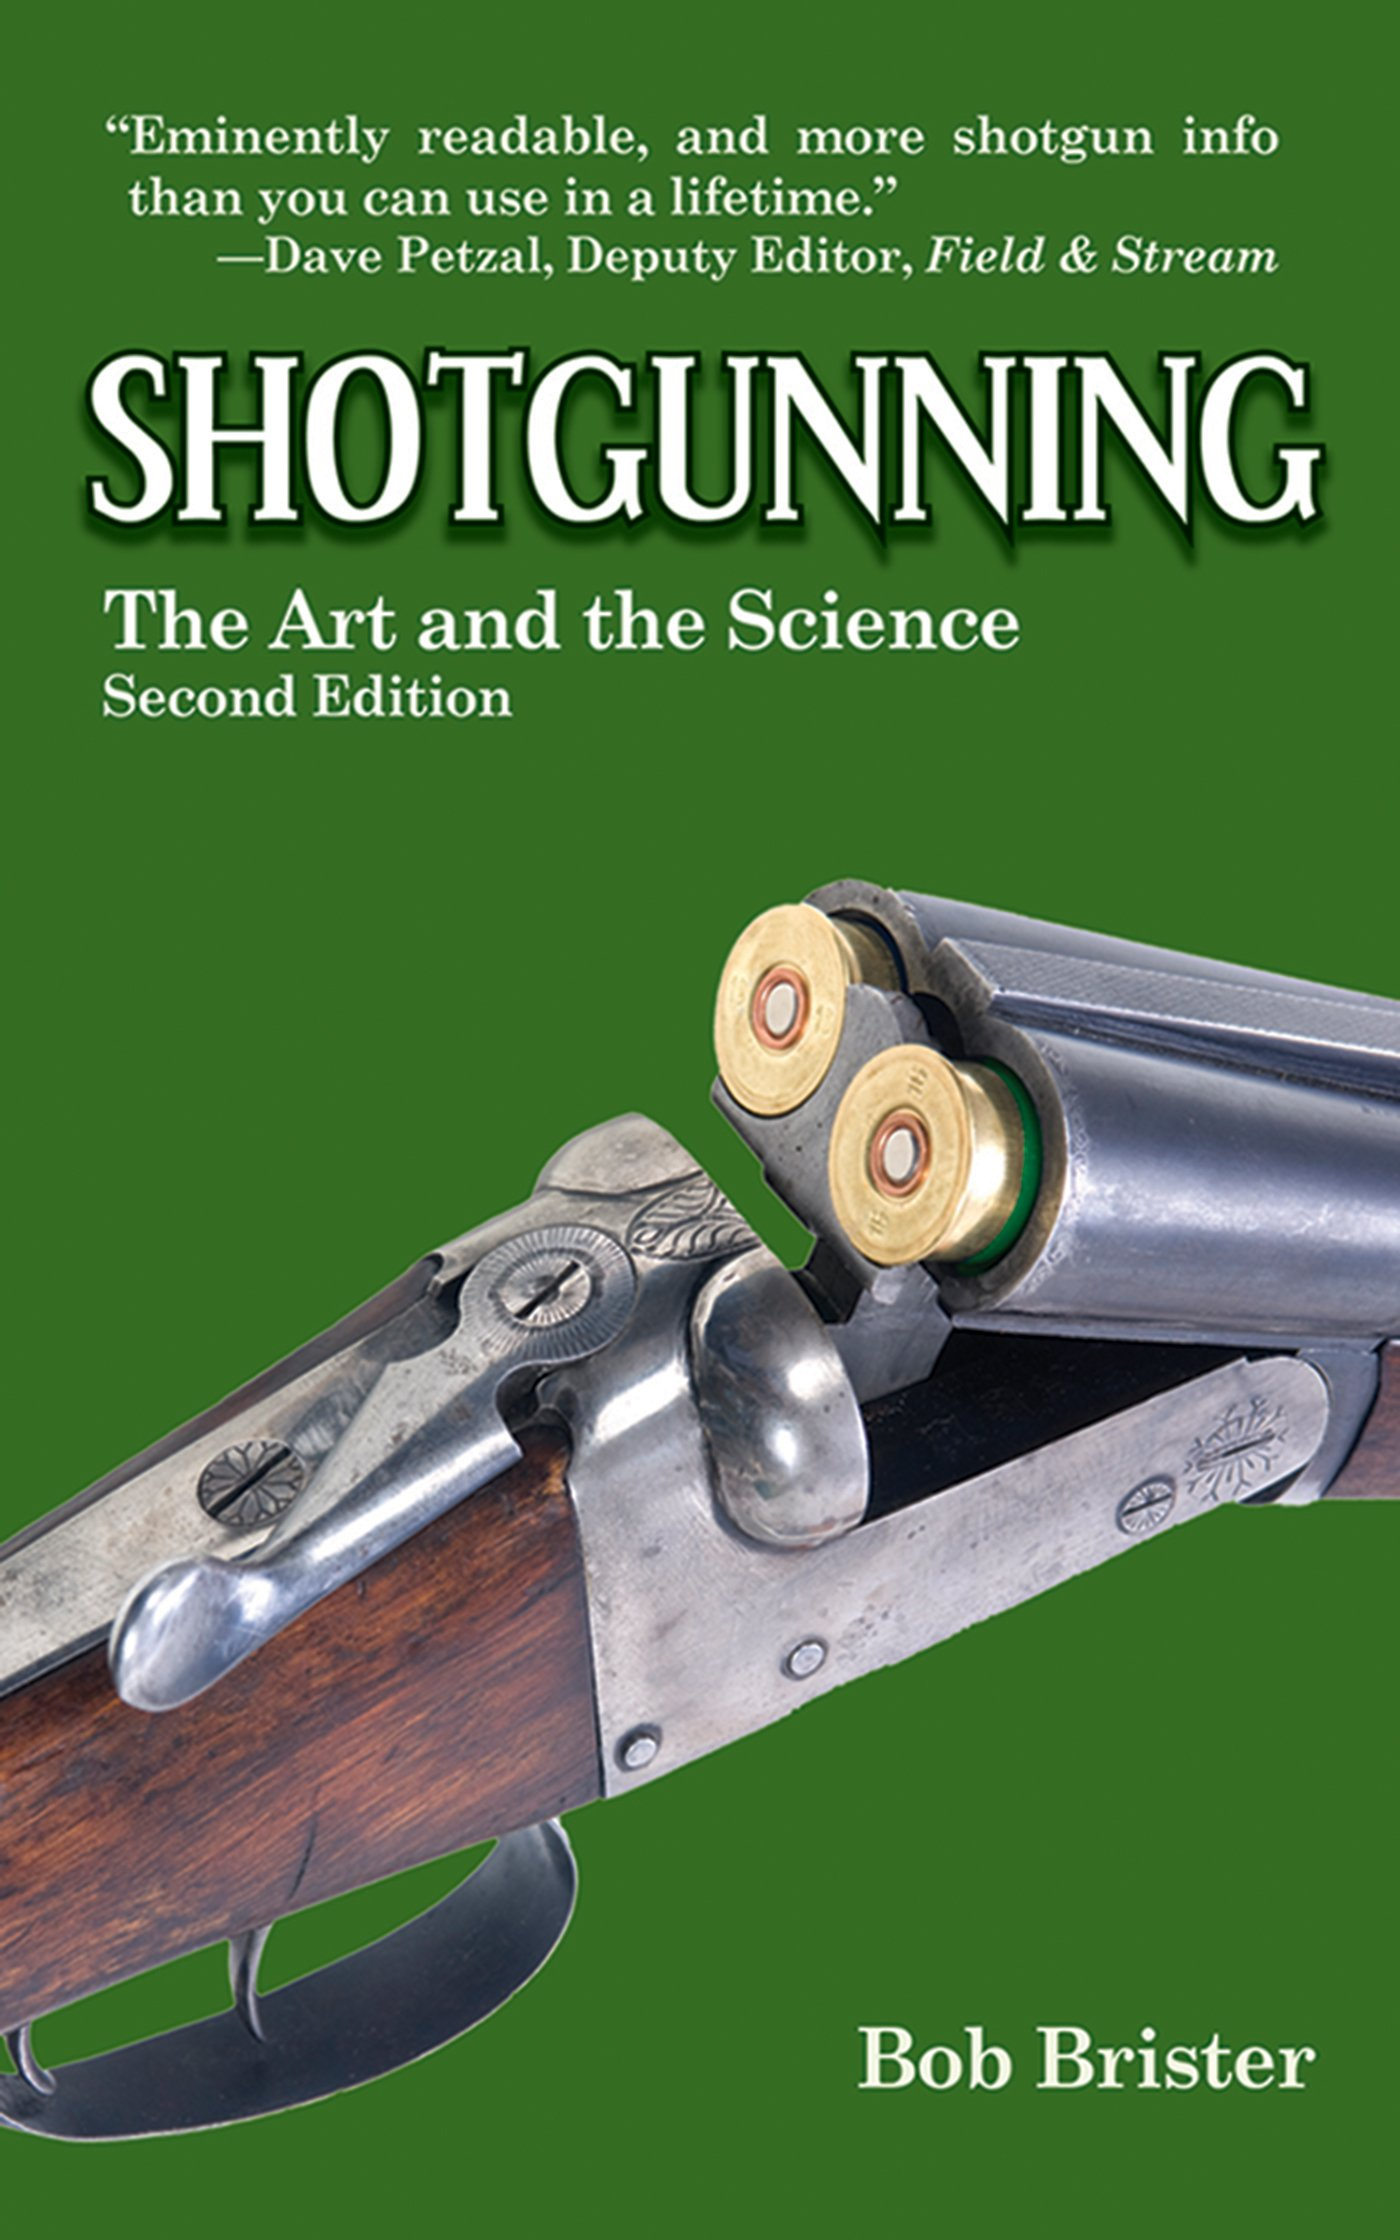 Shotgunning: The Art and the Science Paperback – August 5, 2014 Bob Brister Skyhorse Publishing 1620878305 Equipment & Supplies